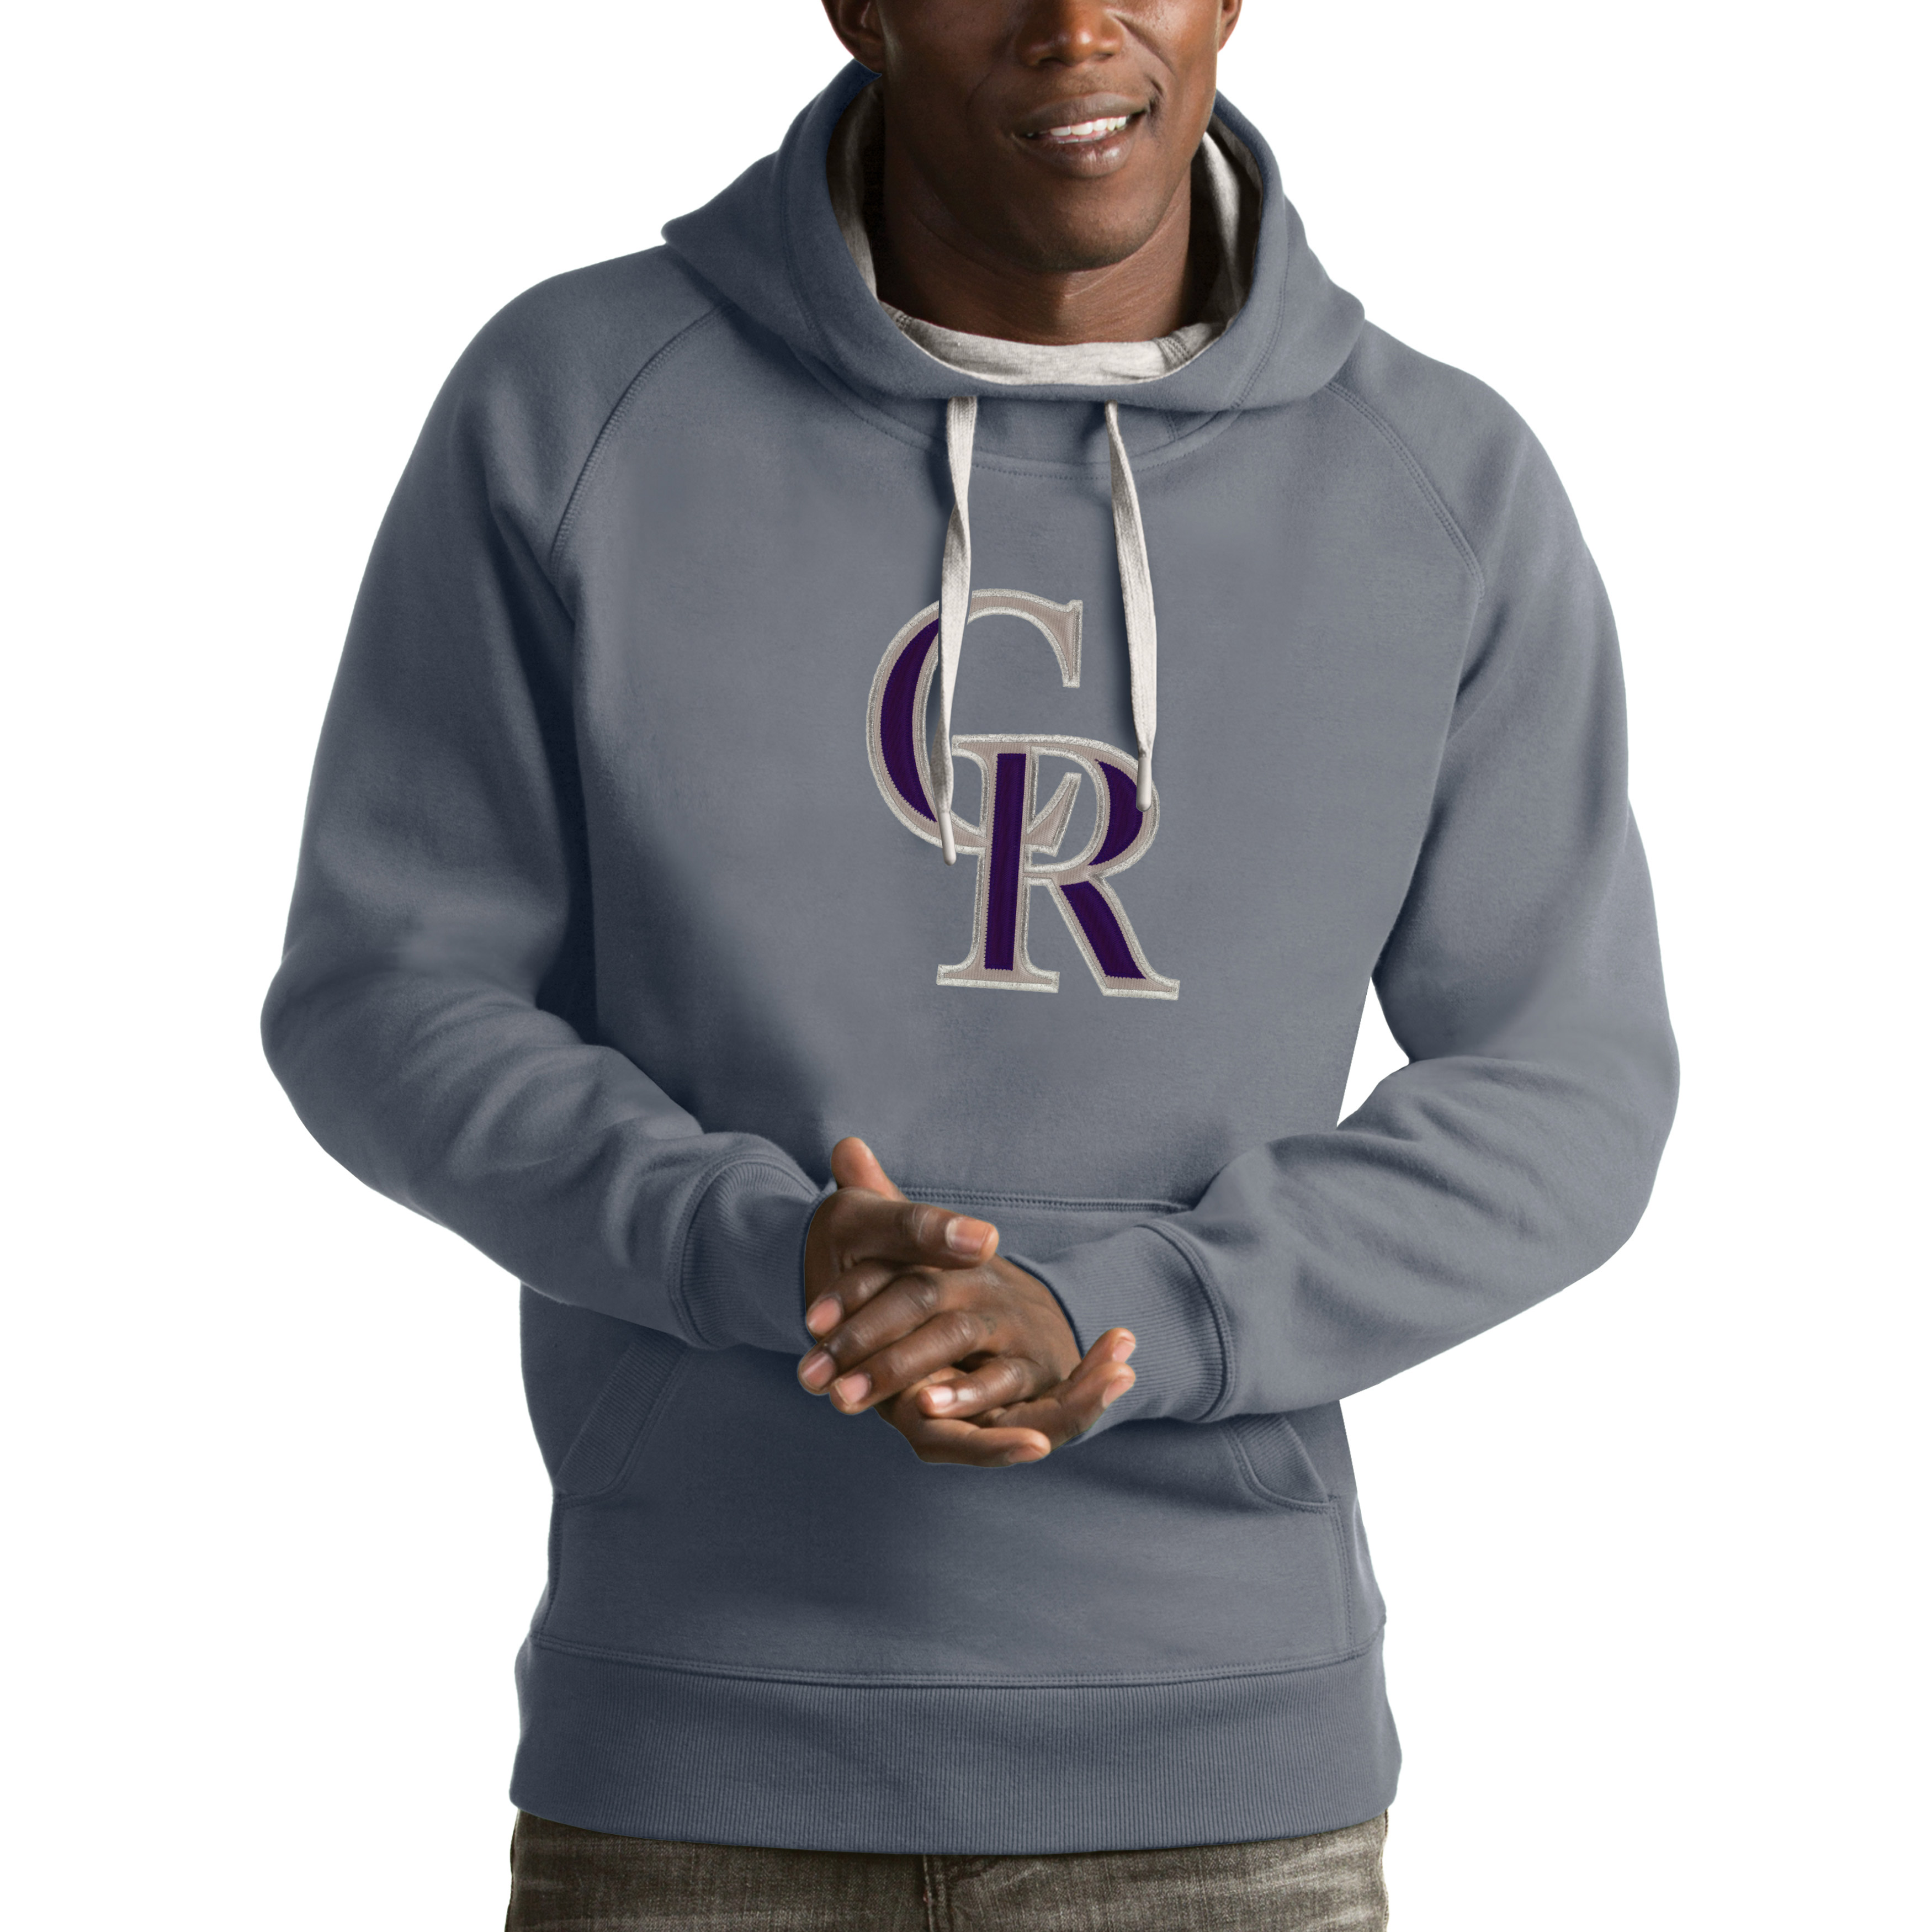 online store 7bb79 f910f Colorado Rockies Antigua Victory Pullover Hoodie - Heathered Gray